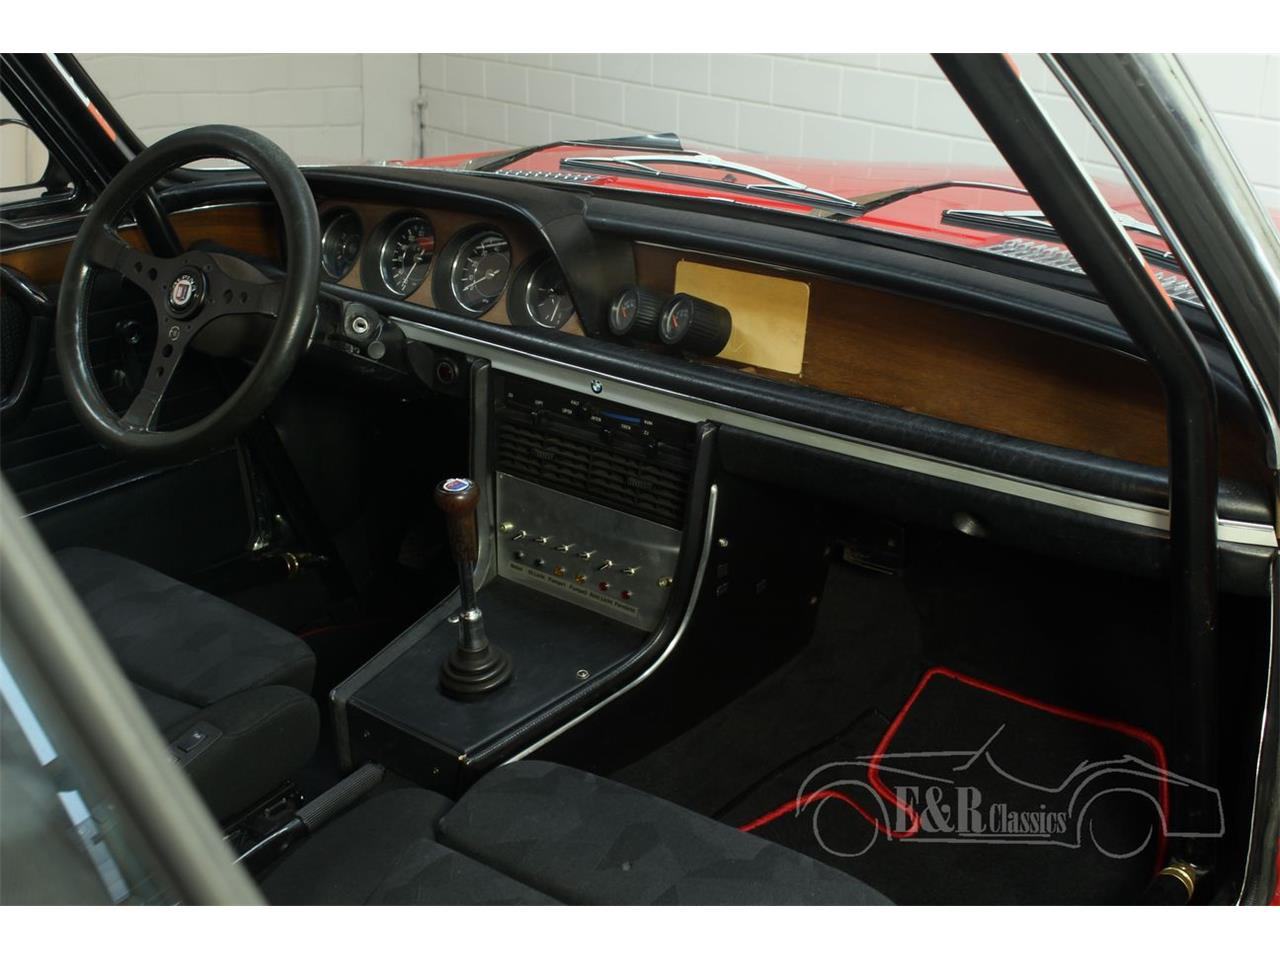 Large Picture of Classic 1973 BMW 3.0CSL - $135,500.00 Offered by E & R Classics - PH42